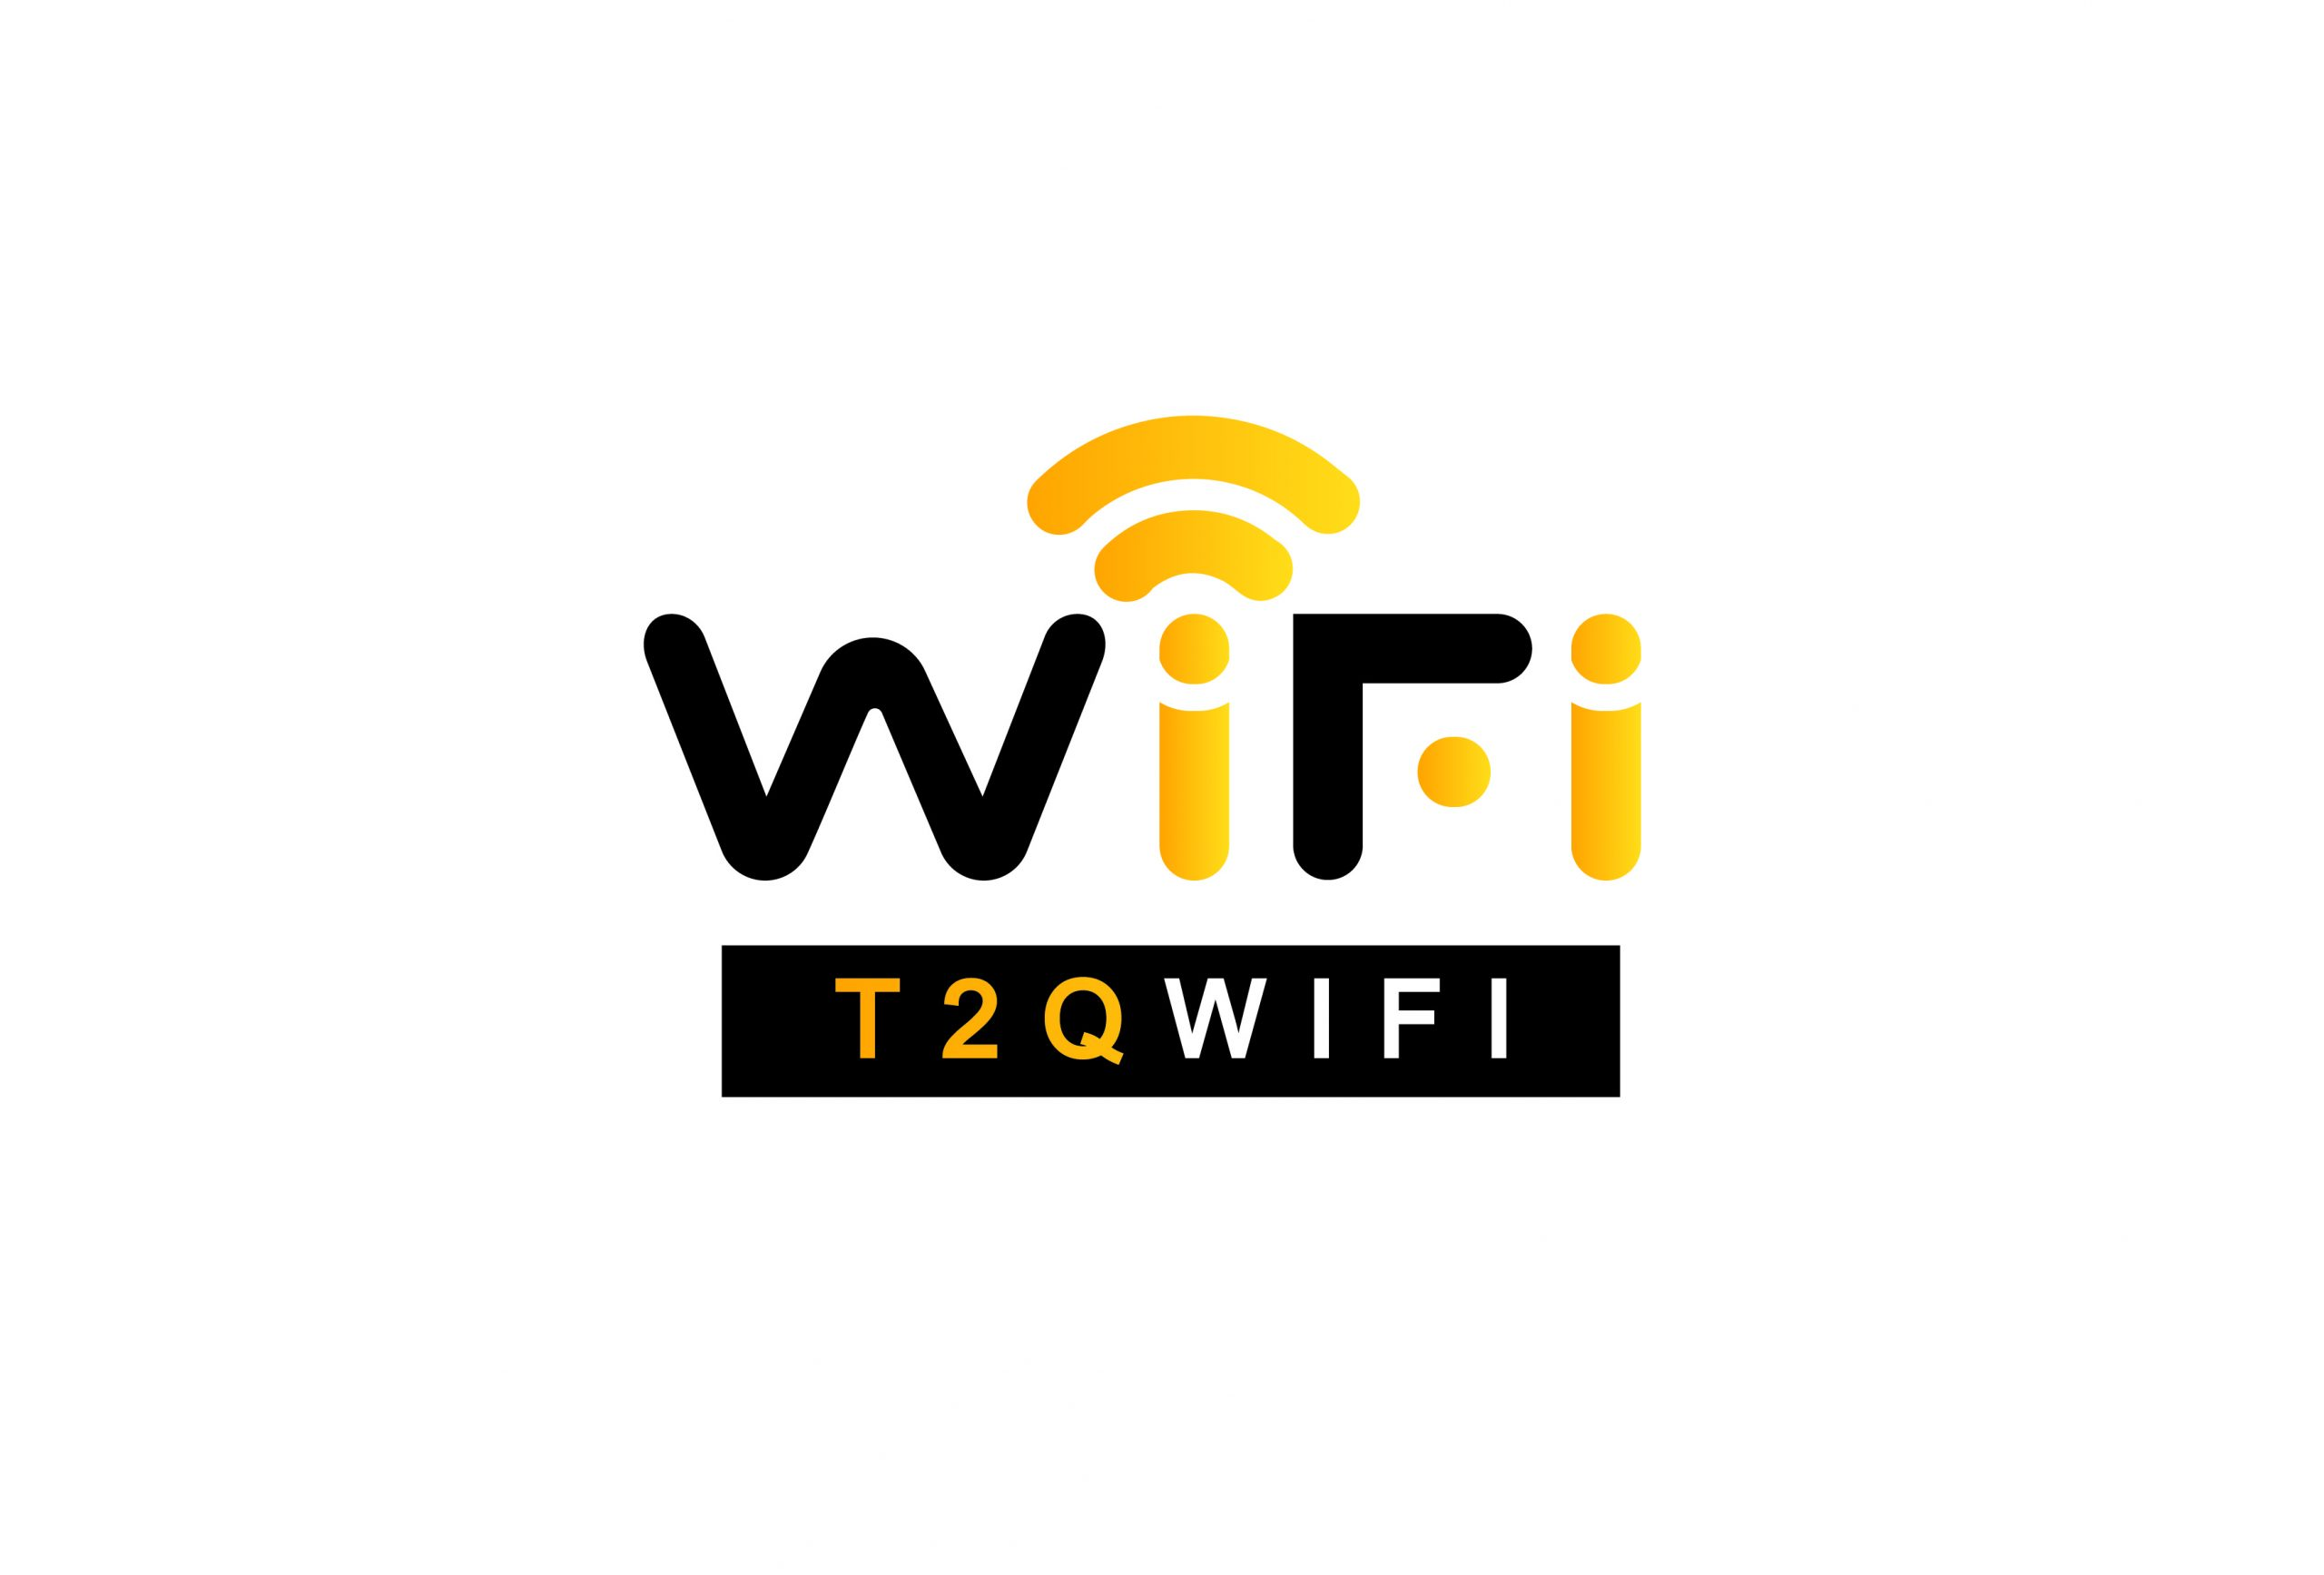 t2qwifi_ds-2ce16h0t-it3zf3-2